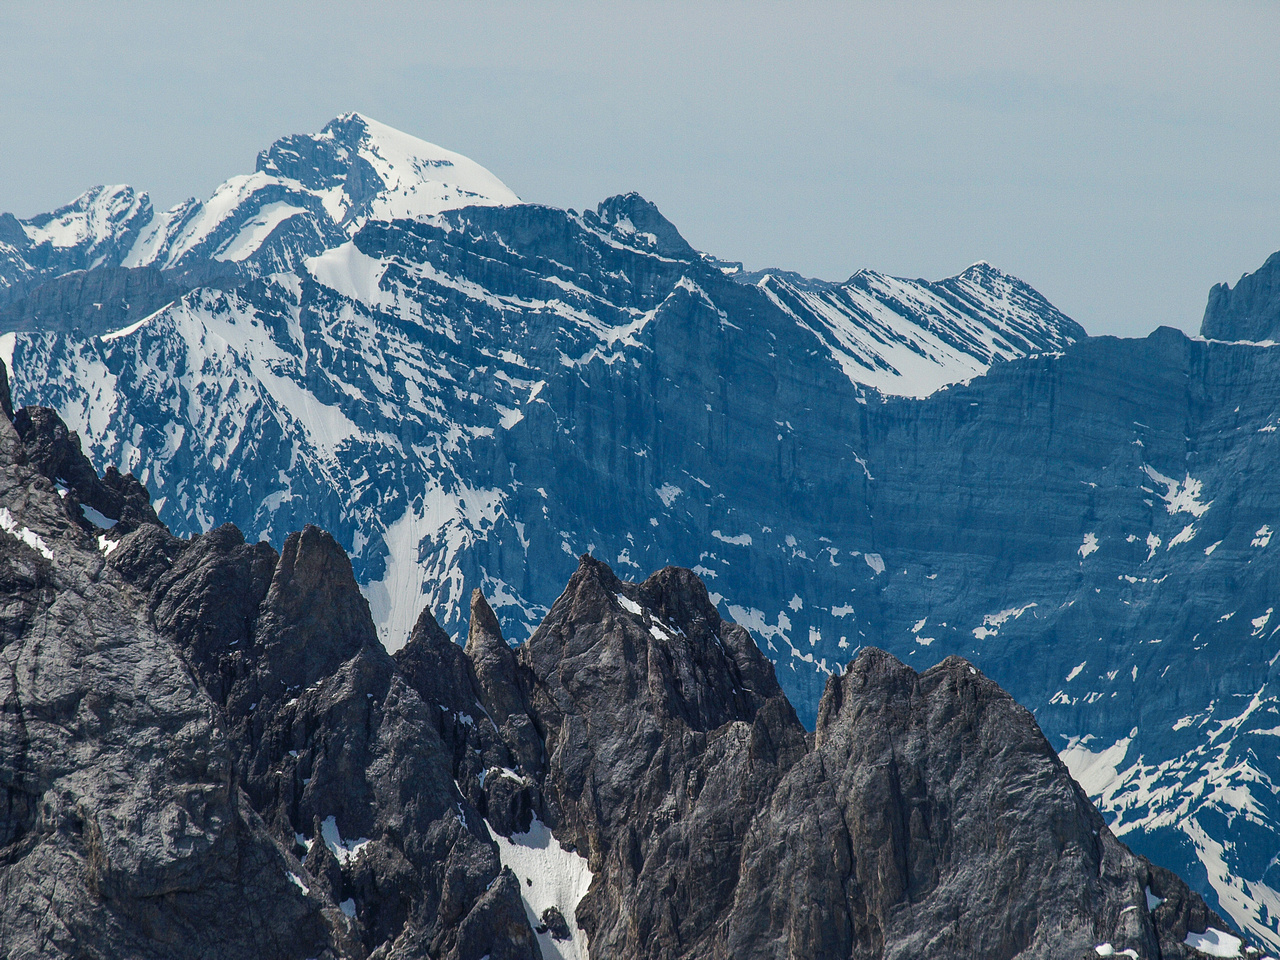 Mount Joffre pokes its head above the other peaks in this view to the south west.